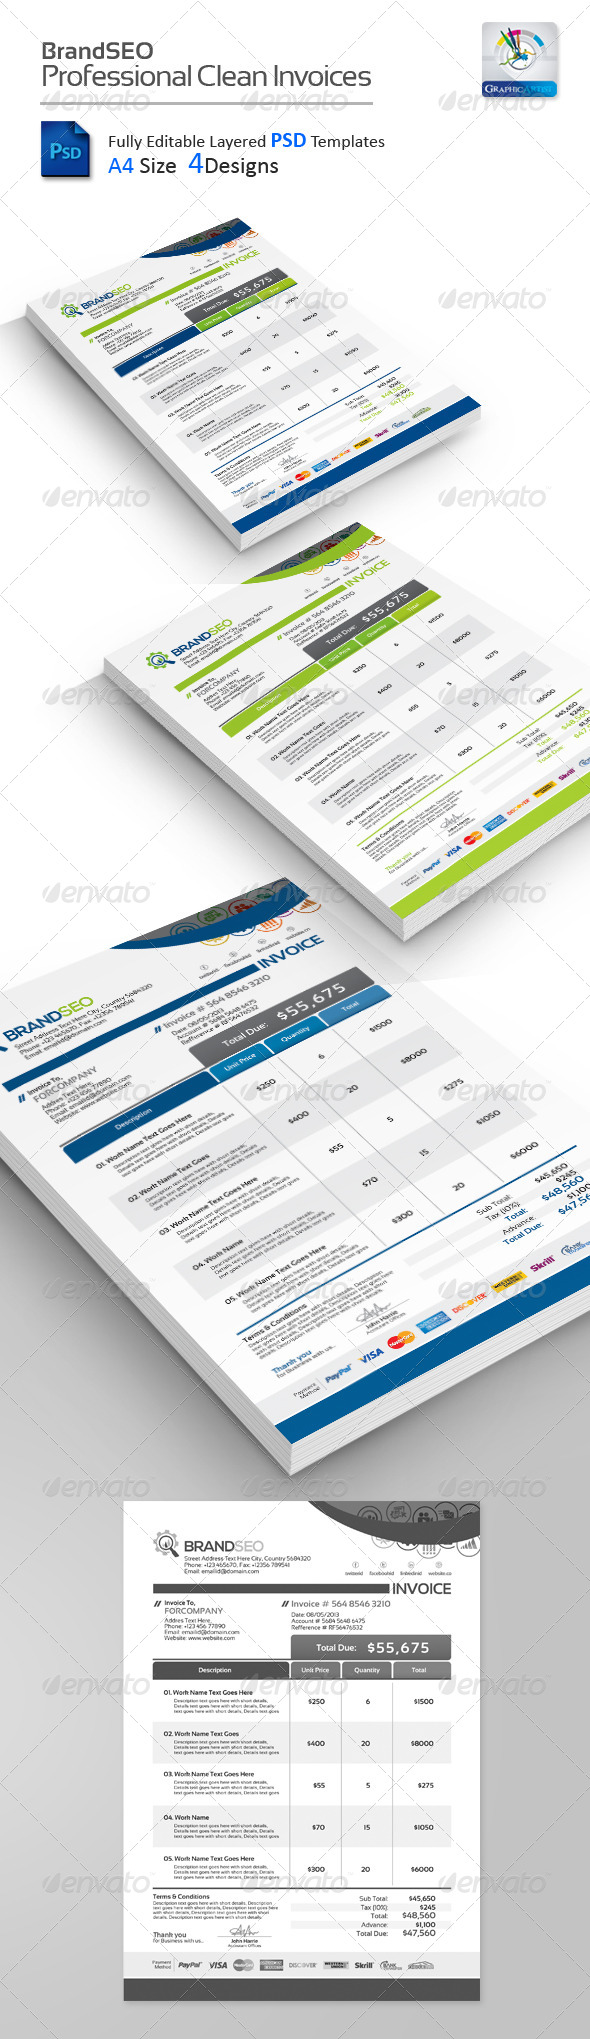 GraphicRiver BrandSEO Creative PSD Invoices 4400525